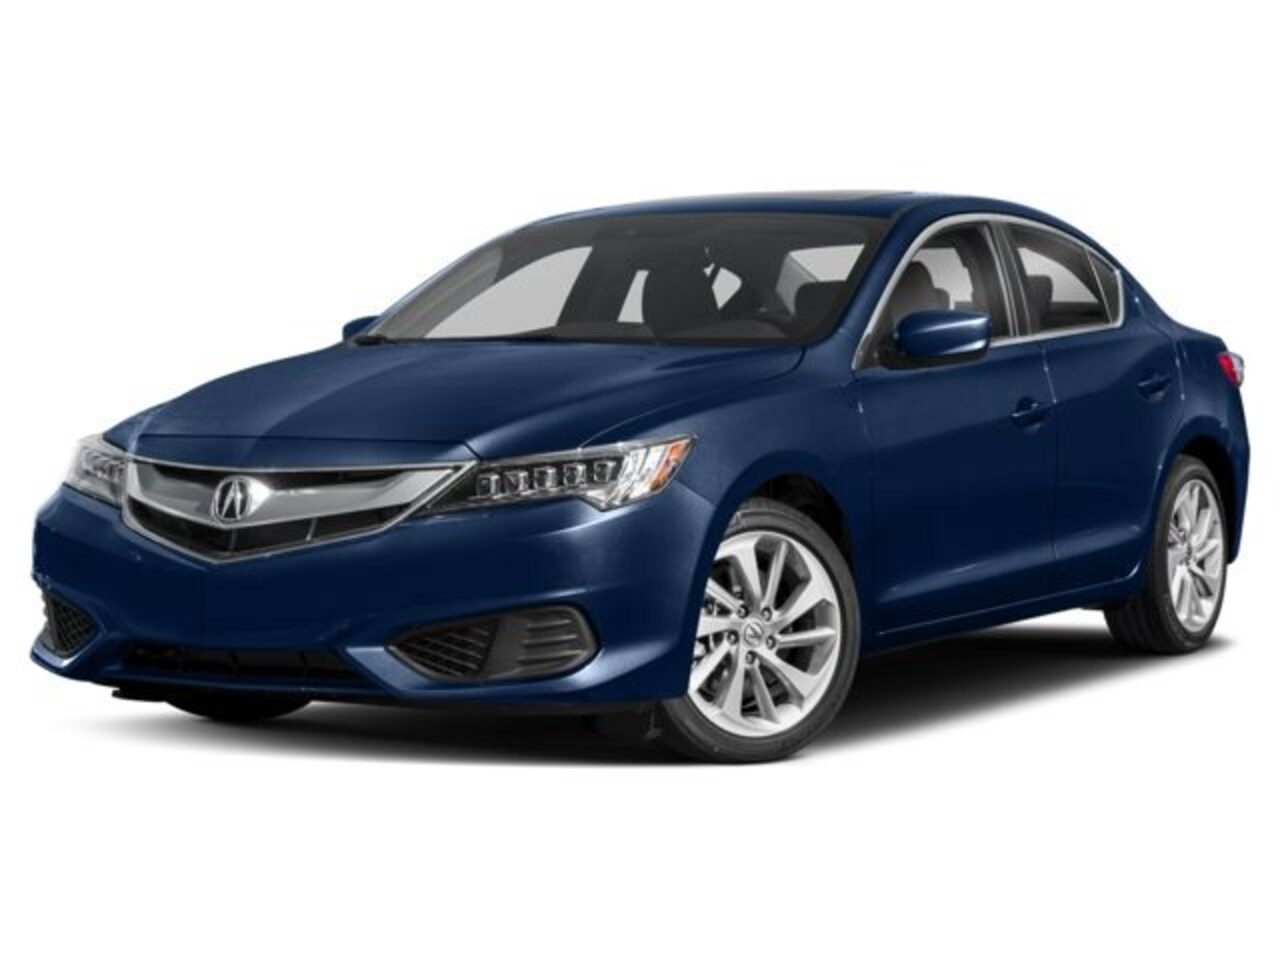 new in car for metallic automobiles bc primary silver acura lunar door ilx kelowna view photo listing sale image details